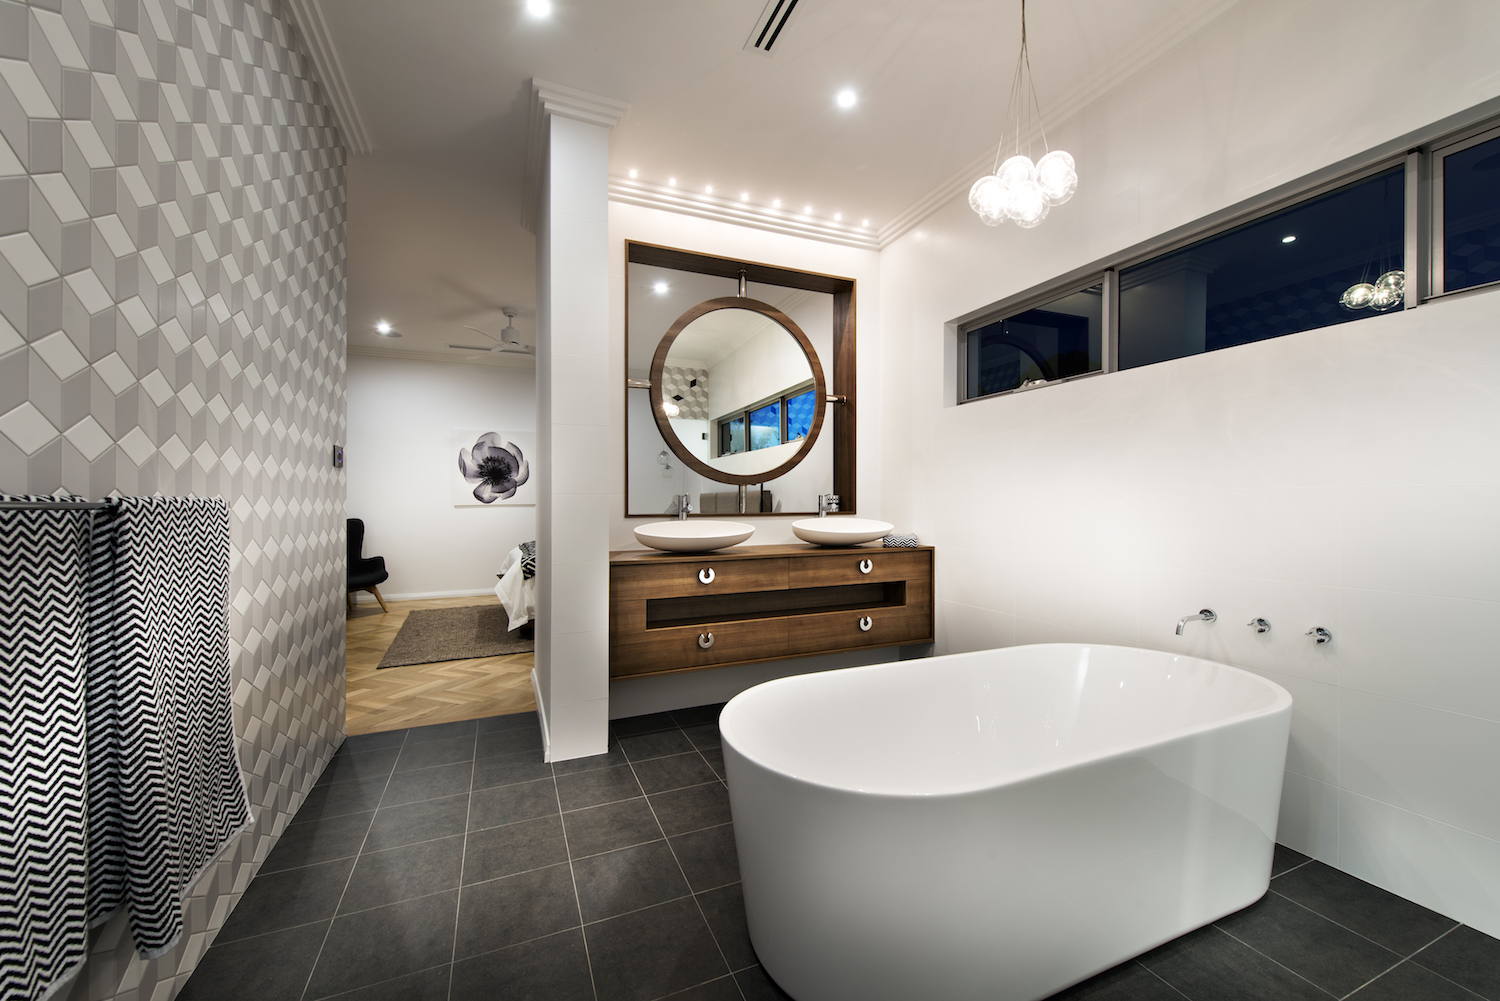 Residential Attitudes - Bathroom with tiled floor